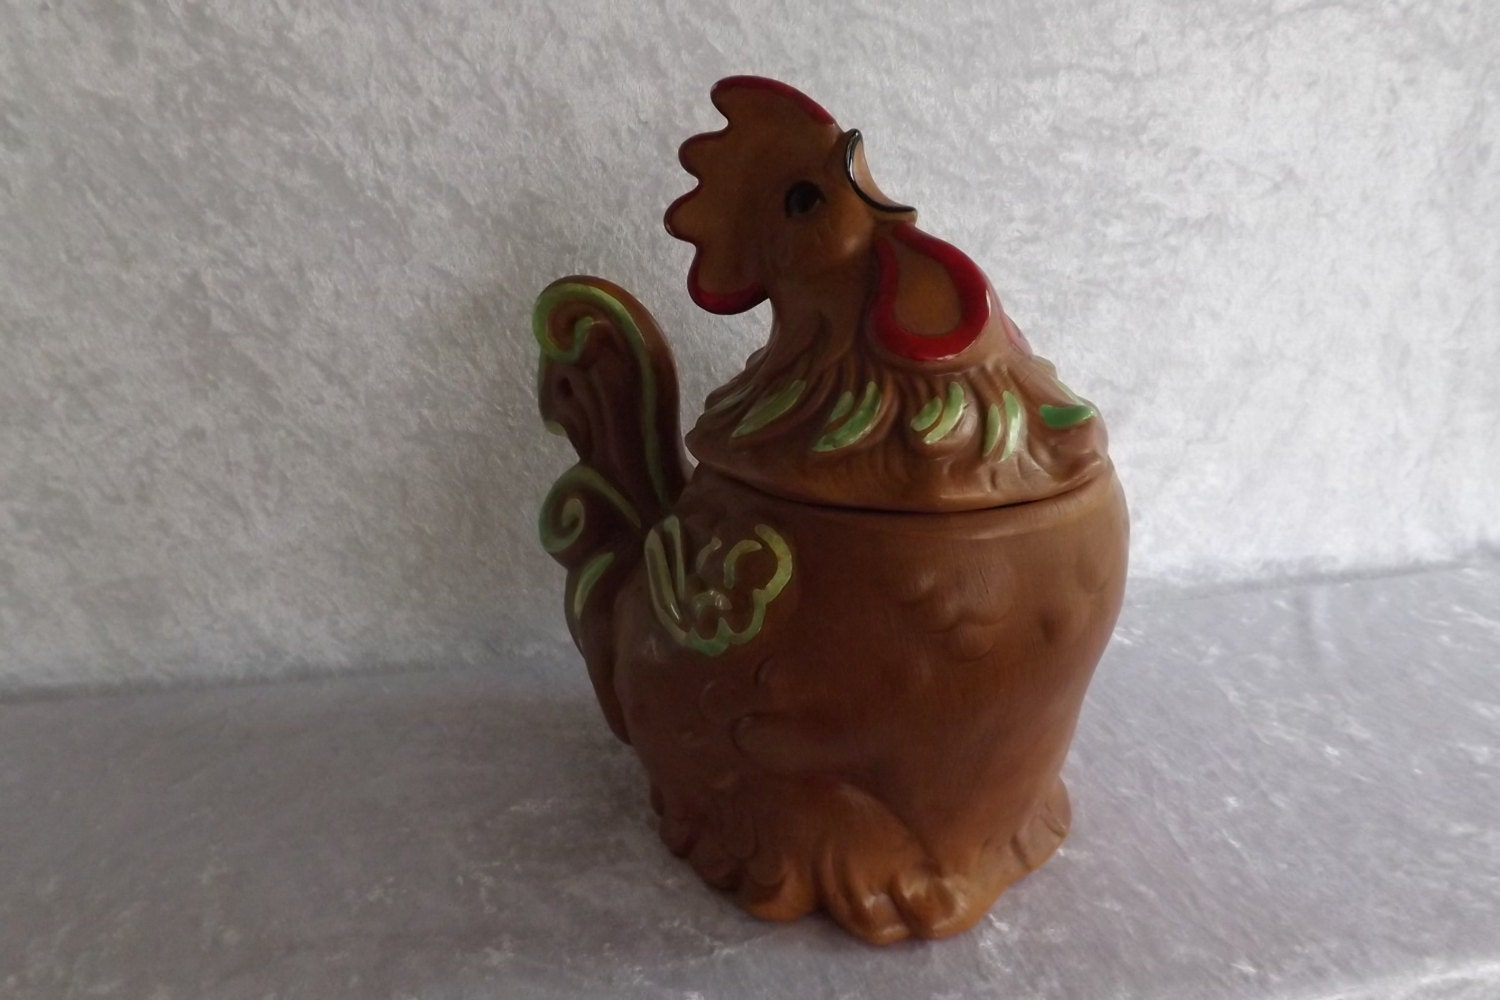 Ceramic rooster cookie jar by jcattictreasures on etsy - Ceramic rooster cookie jar ...